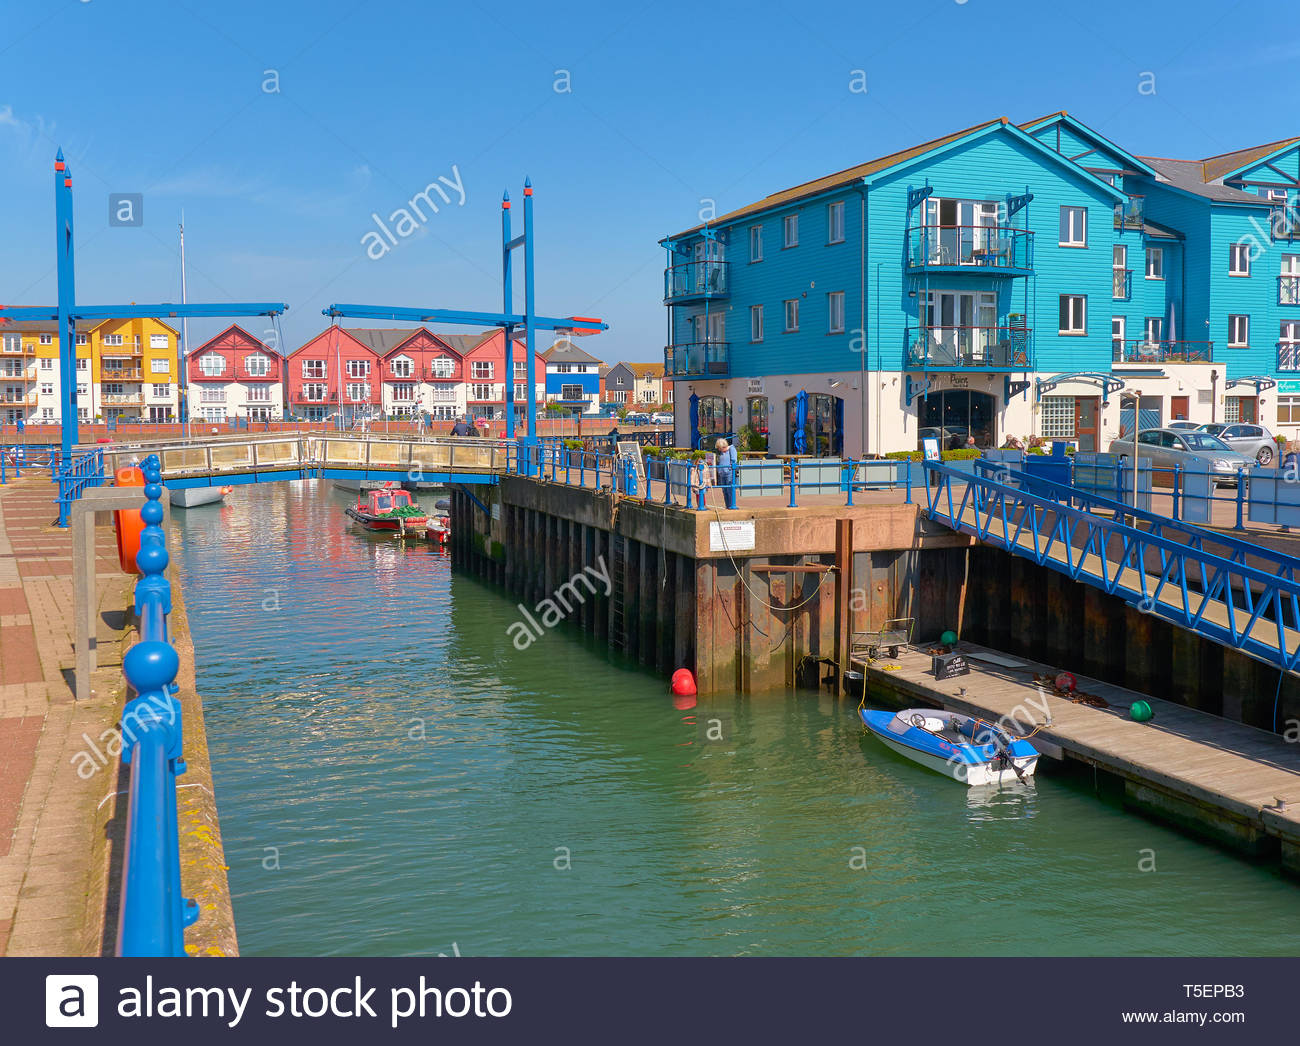 The exe estuary leading into exmouth marina in south devon in england uk - Stock Image